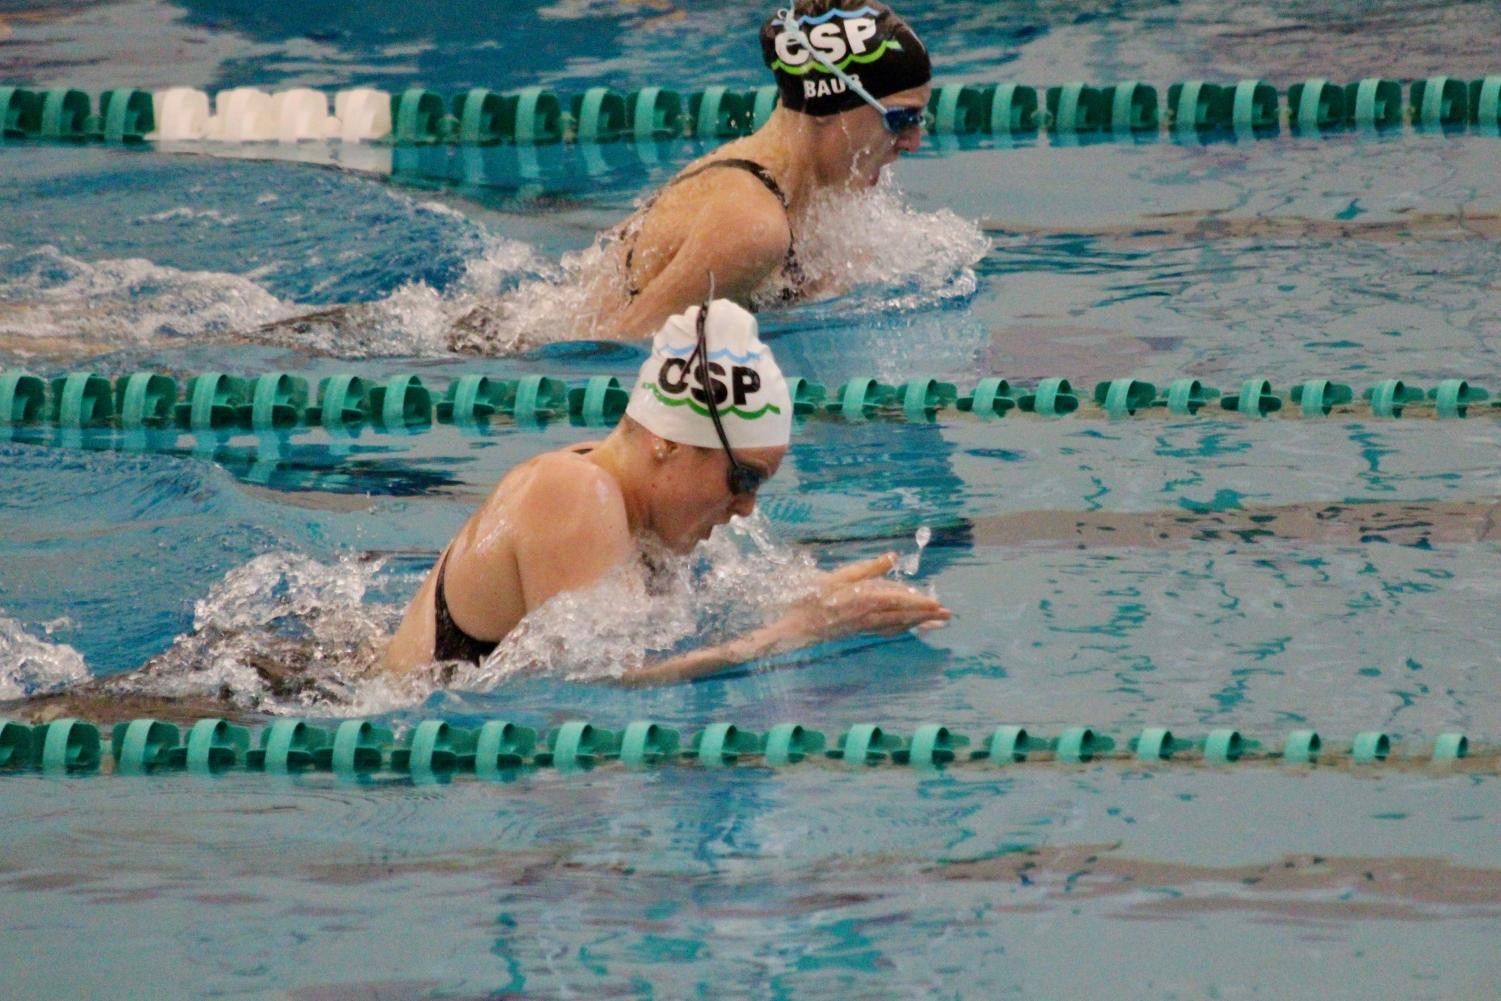 Mottl competes in a breaststroke event during a swim meet.